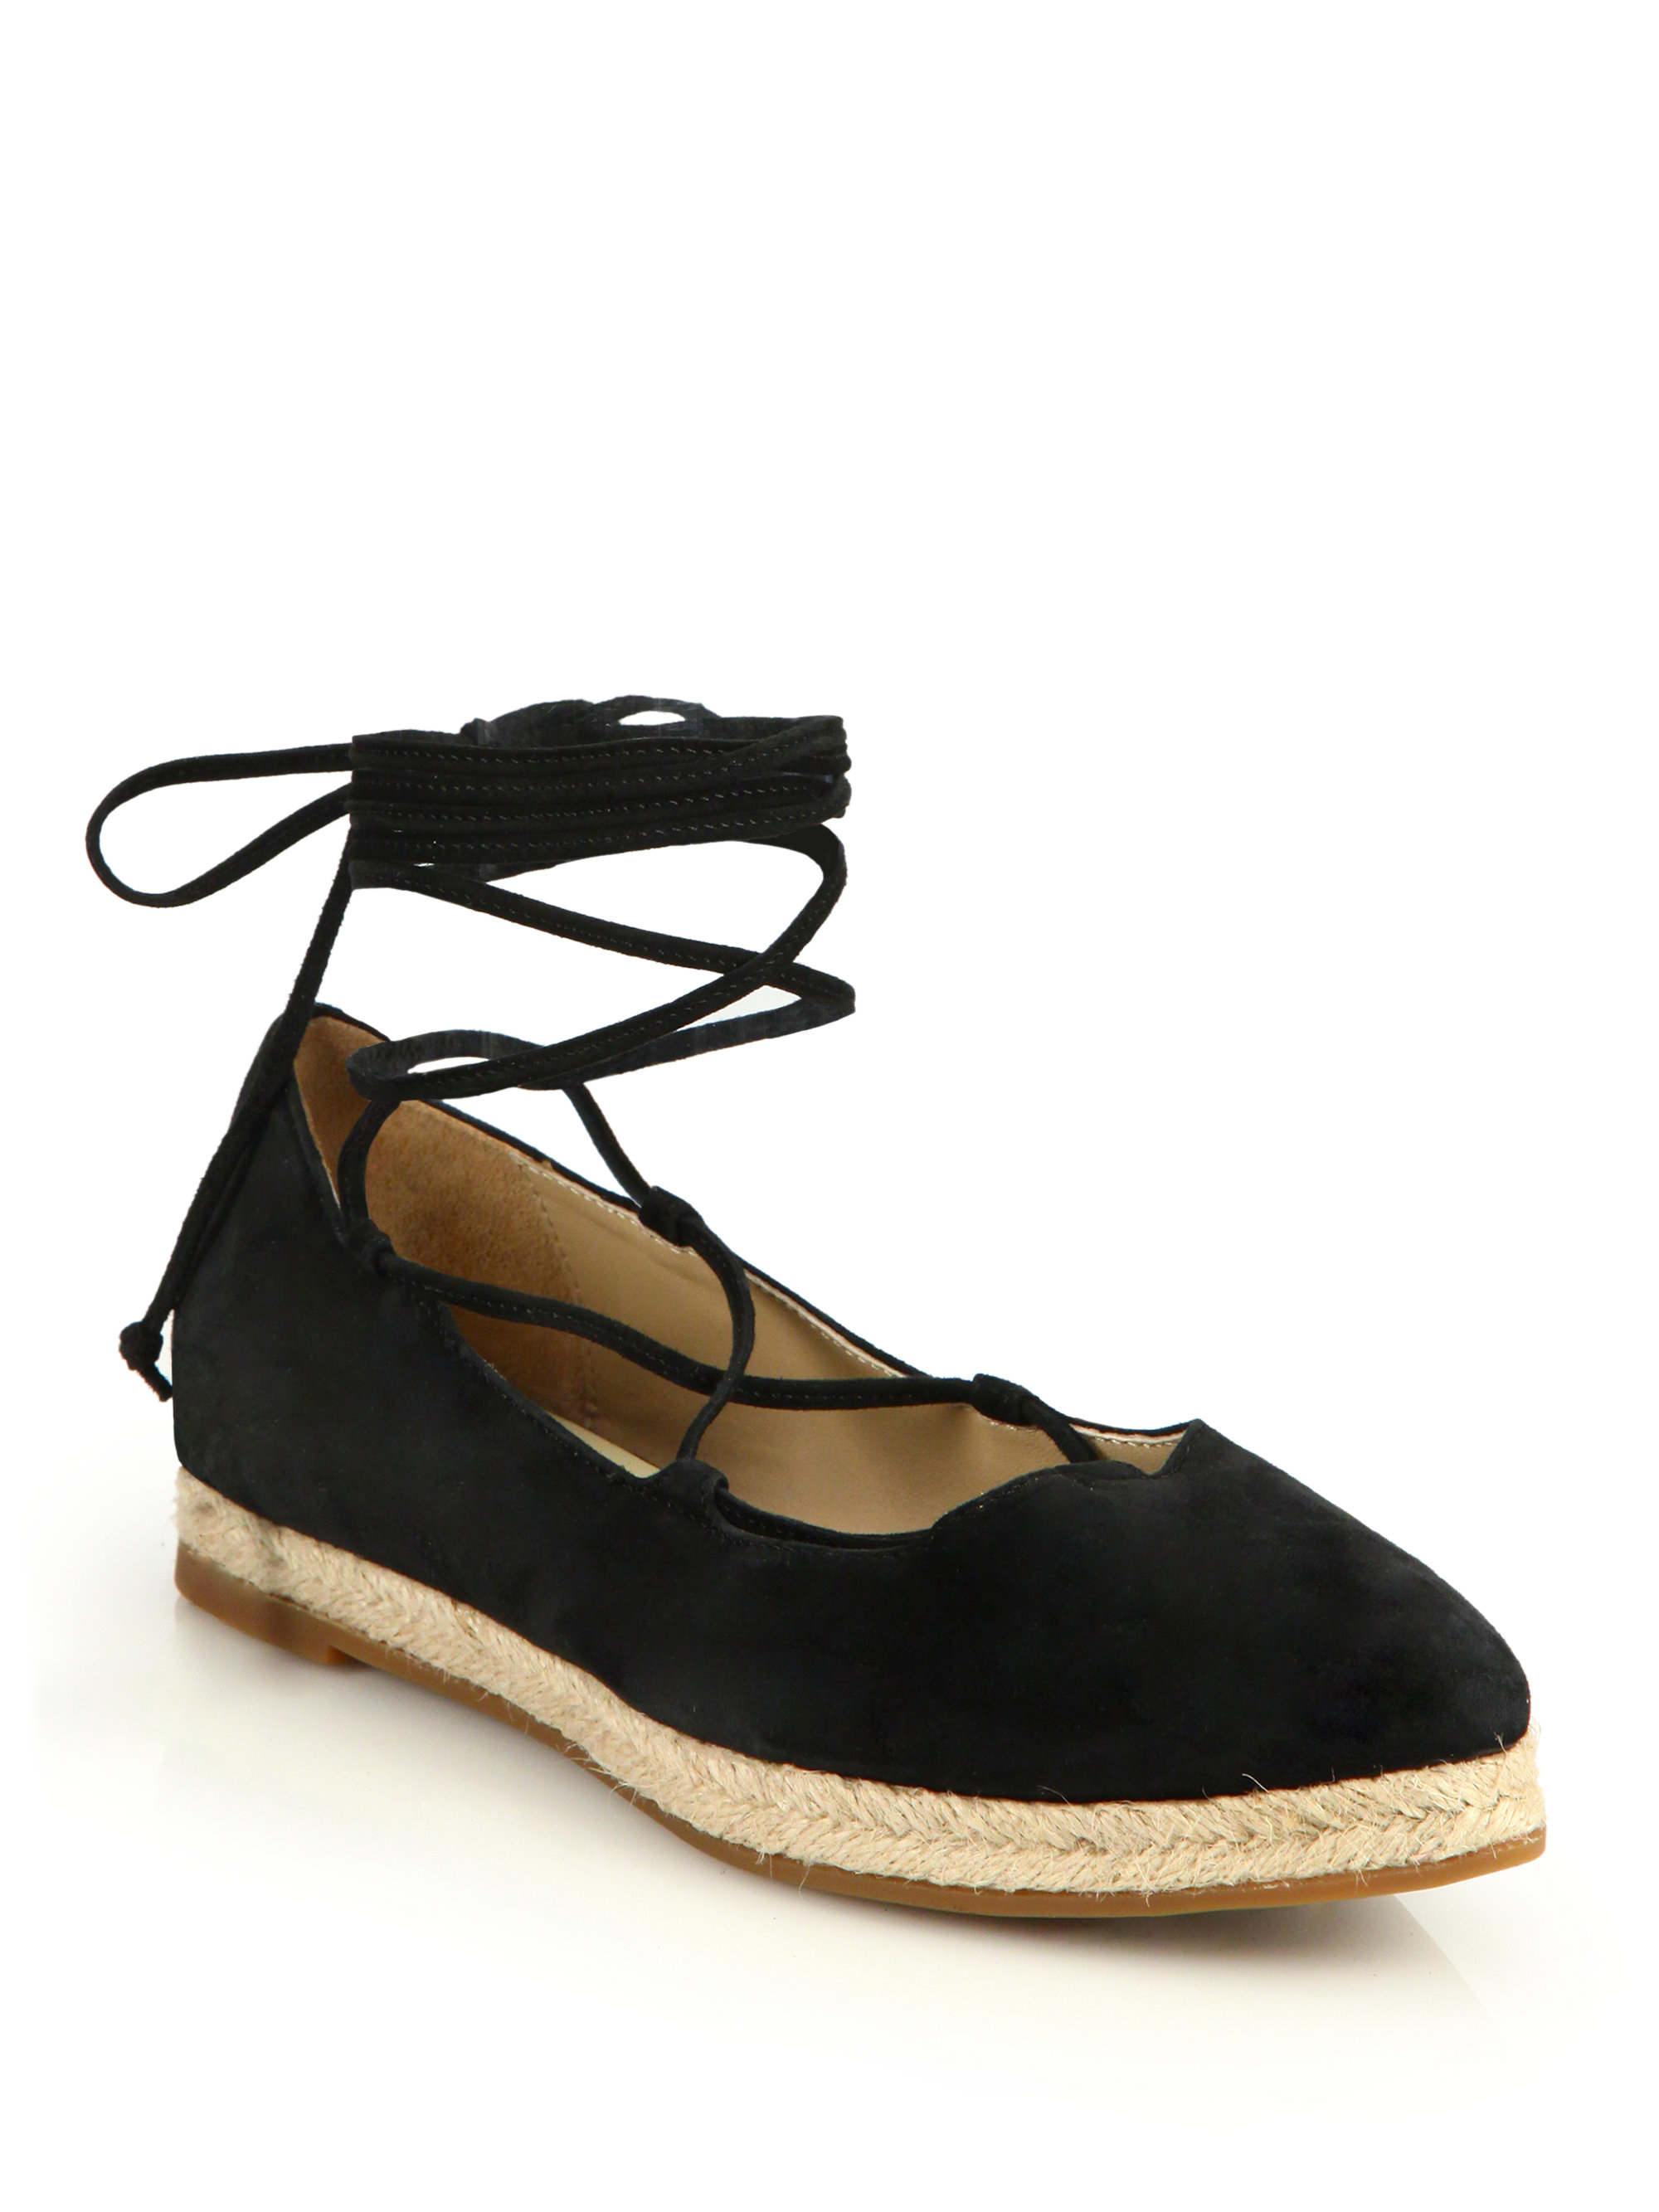 6a64eddd43ed Gallery. Previously sold at  Saks Fifth Avenue · Women s Lace Up Flats ...